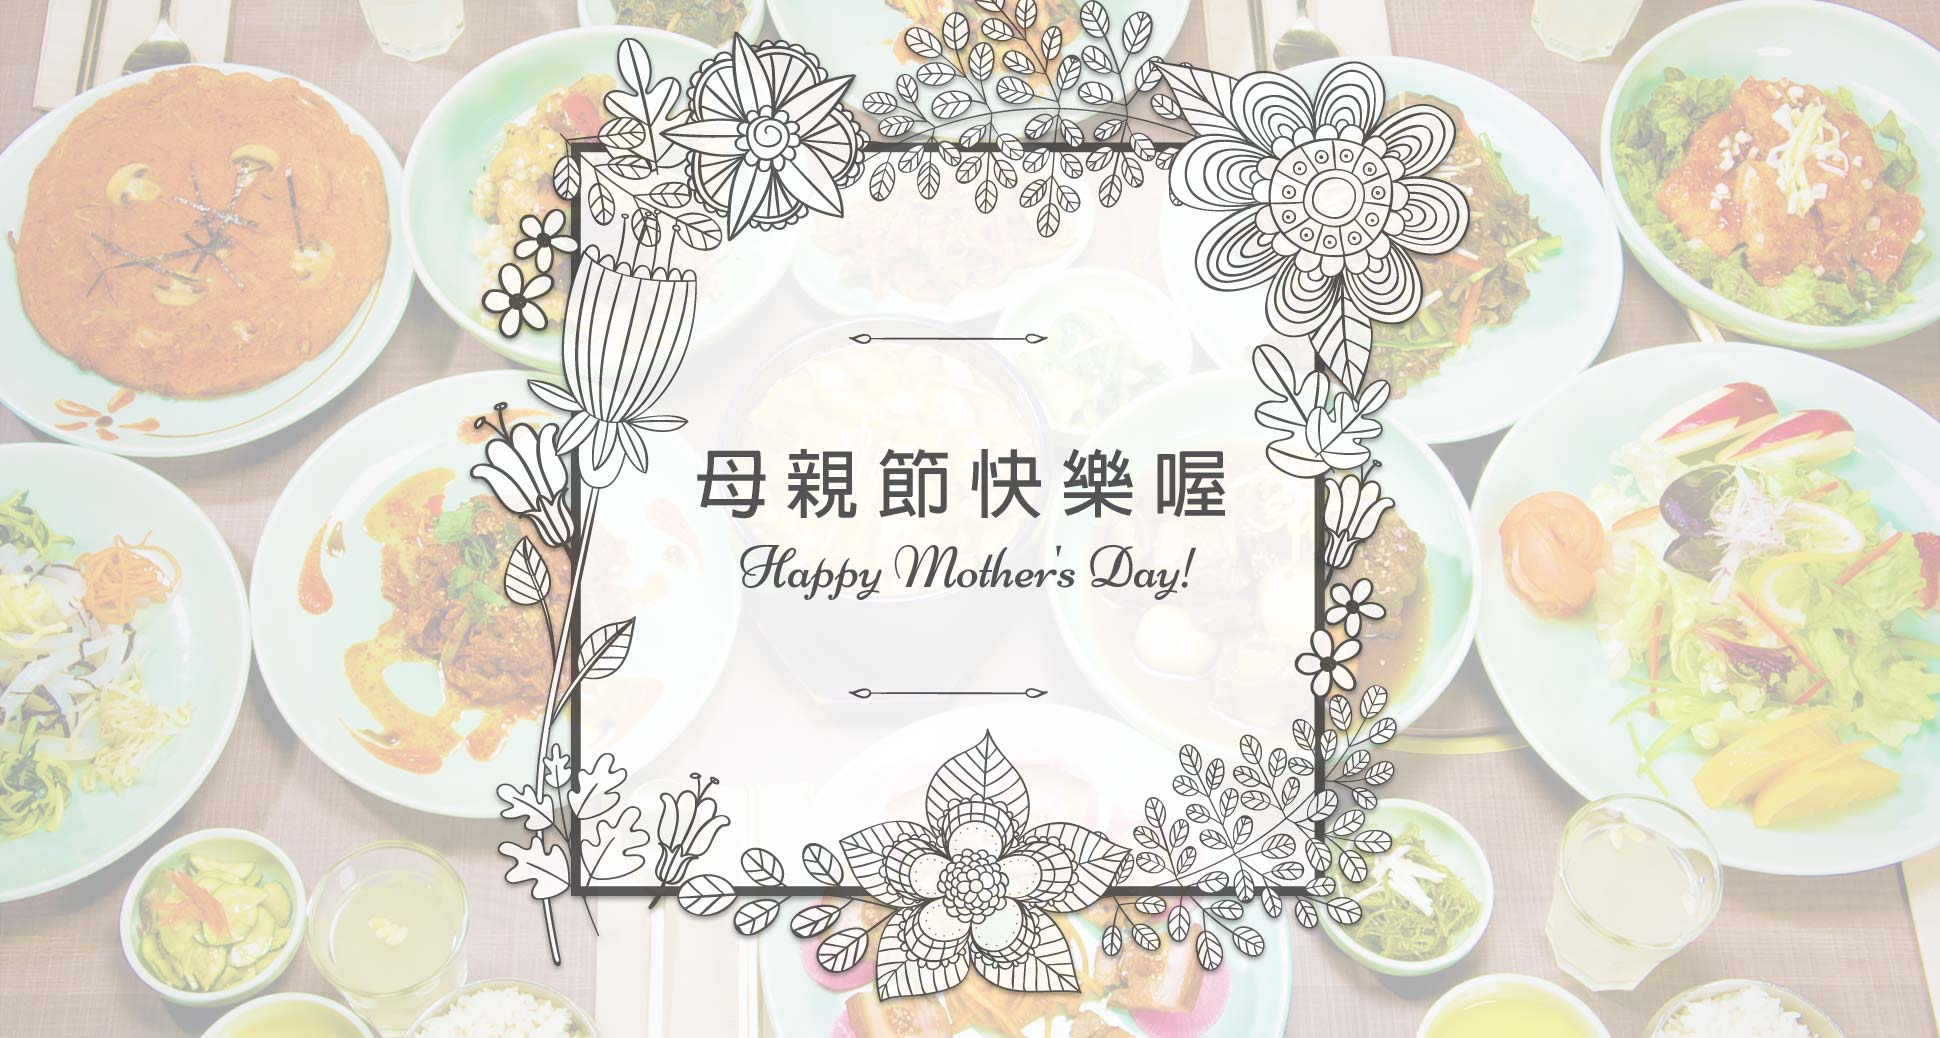 Happy mother's day! 母親節快樂喔~